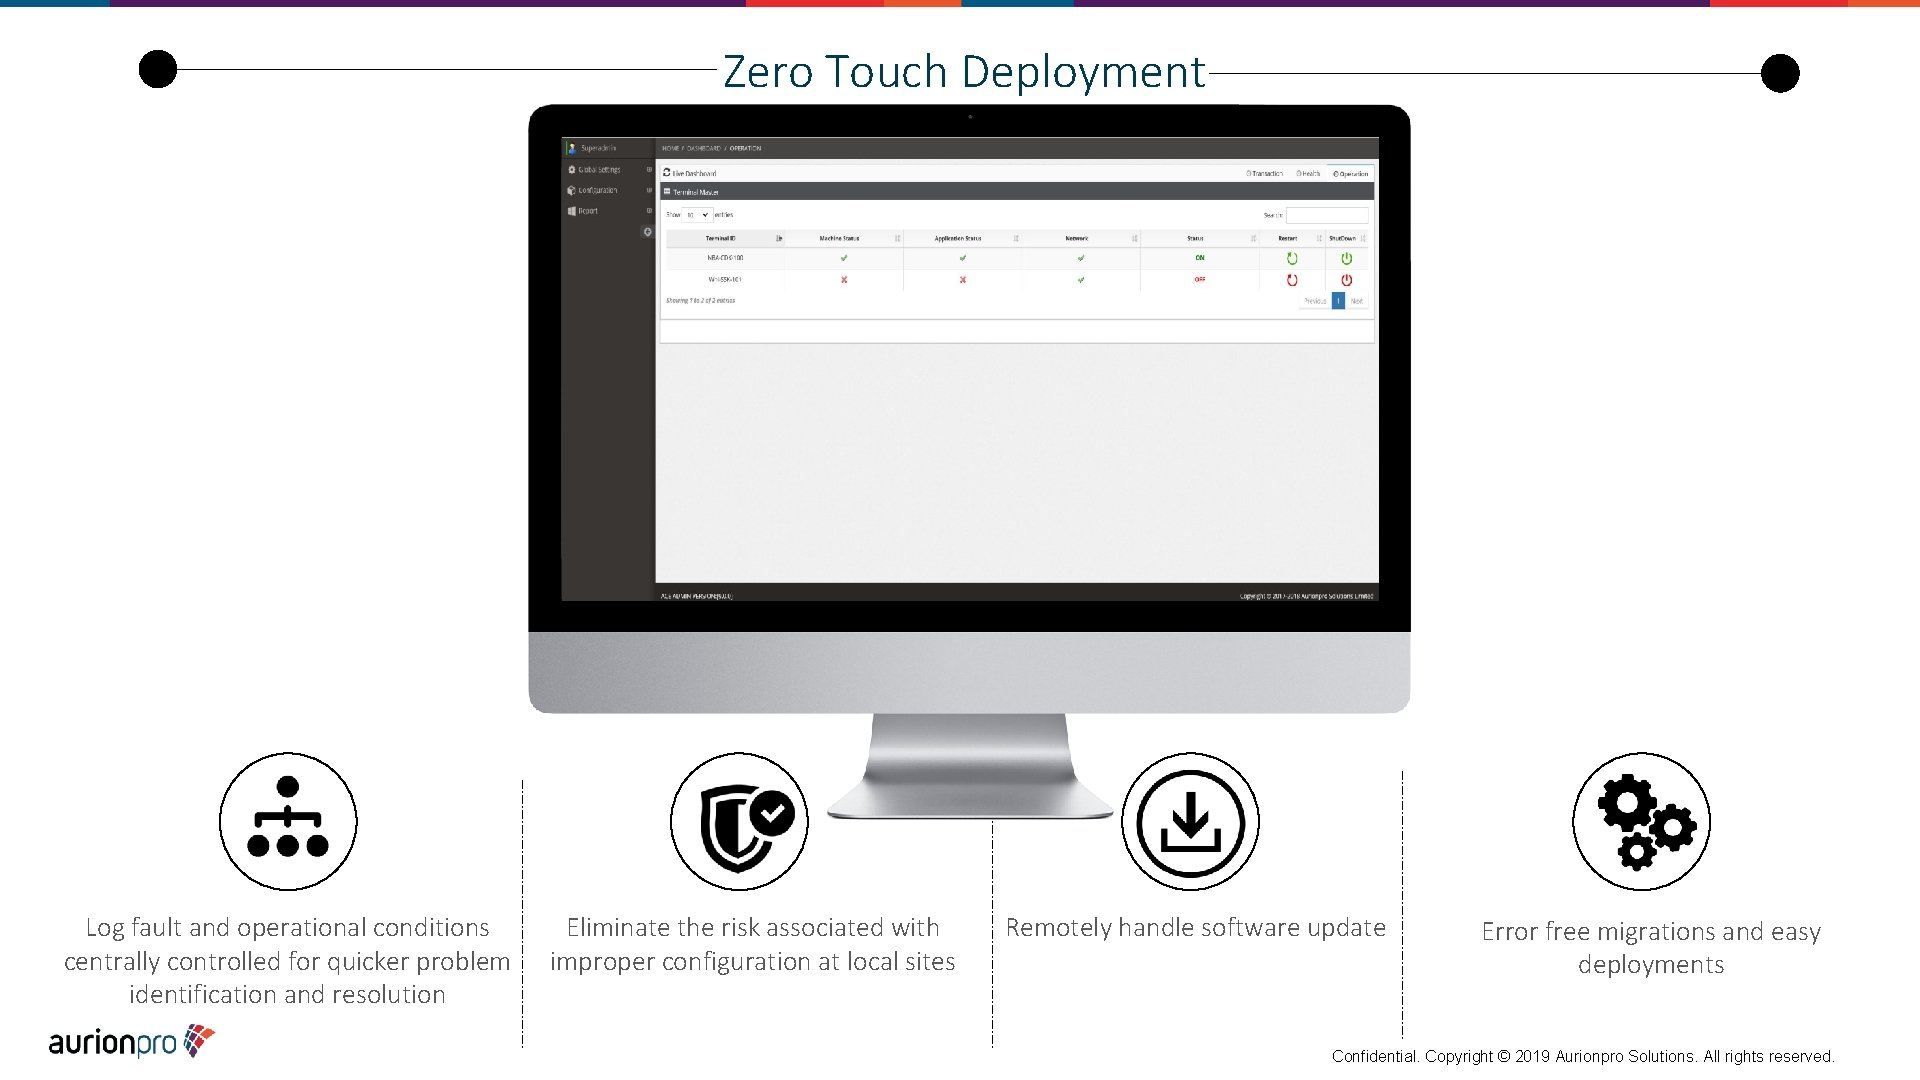 Zero Touch Deployment Log fault and operational conditions centrally controlled for quicker problem identification